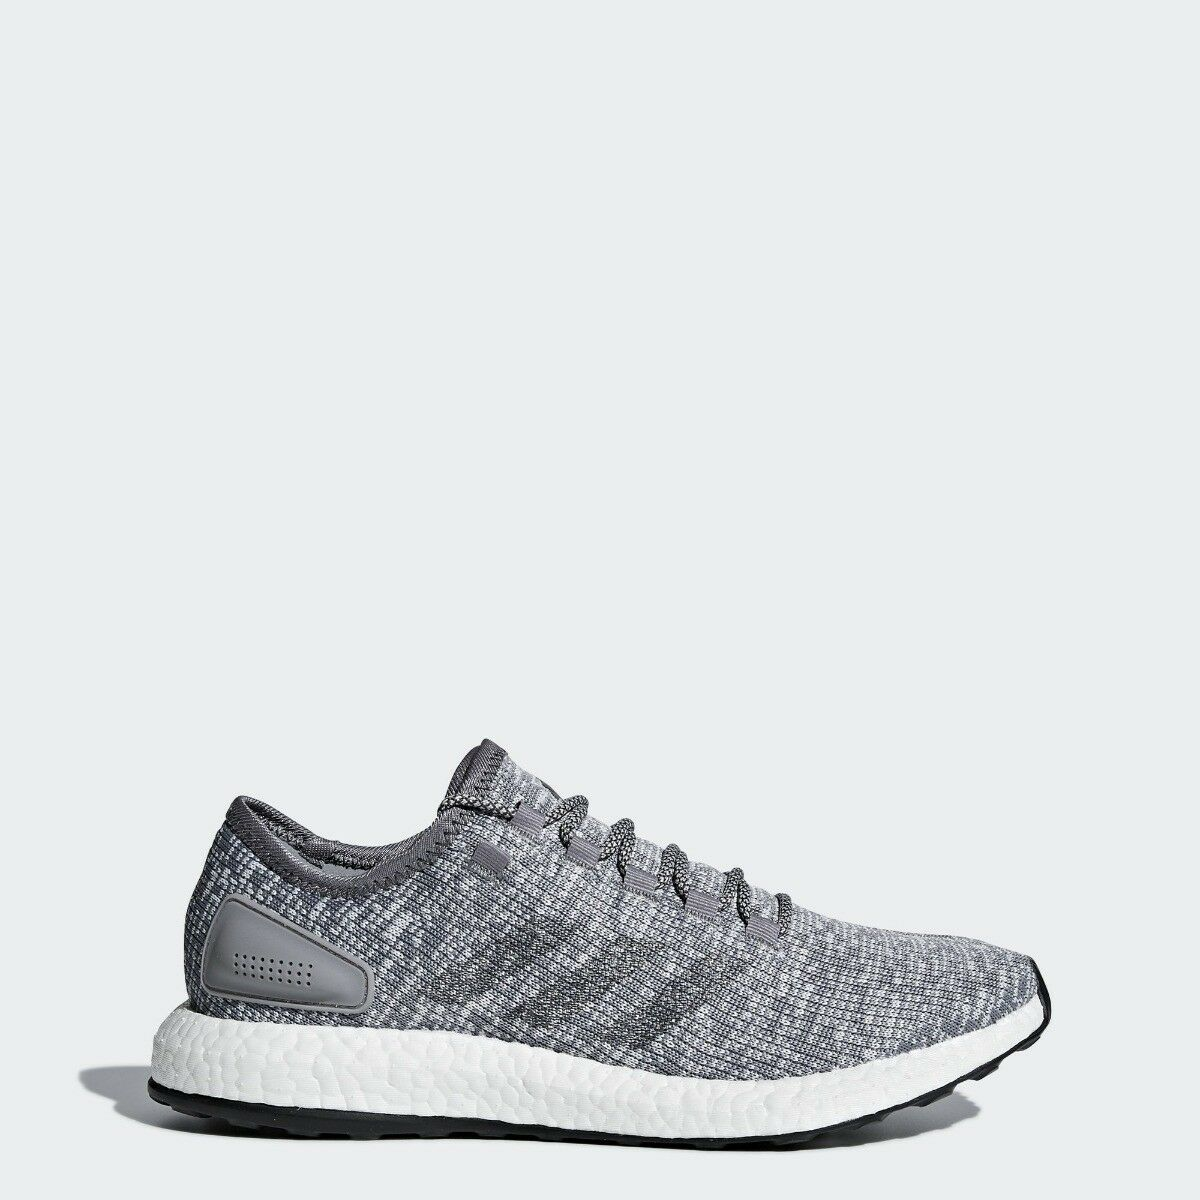 adidas ORIGINALS NMD_R2 PK homme TRAINERS fonctionnement chaussures Taille 7 - 11.5 NEW